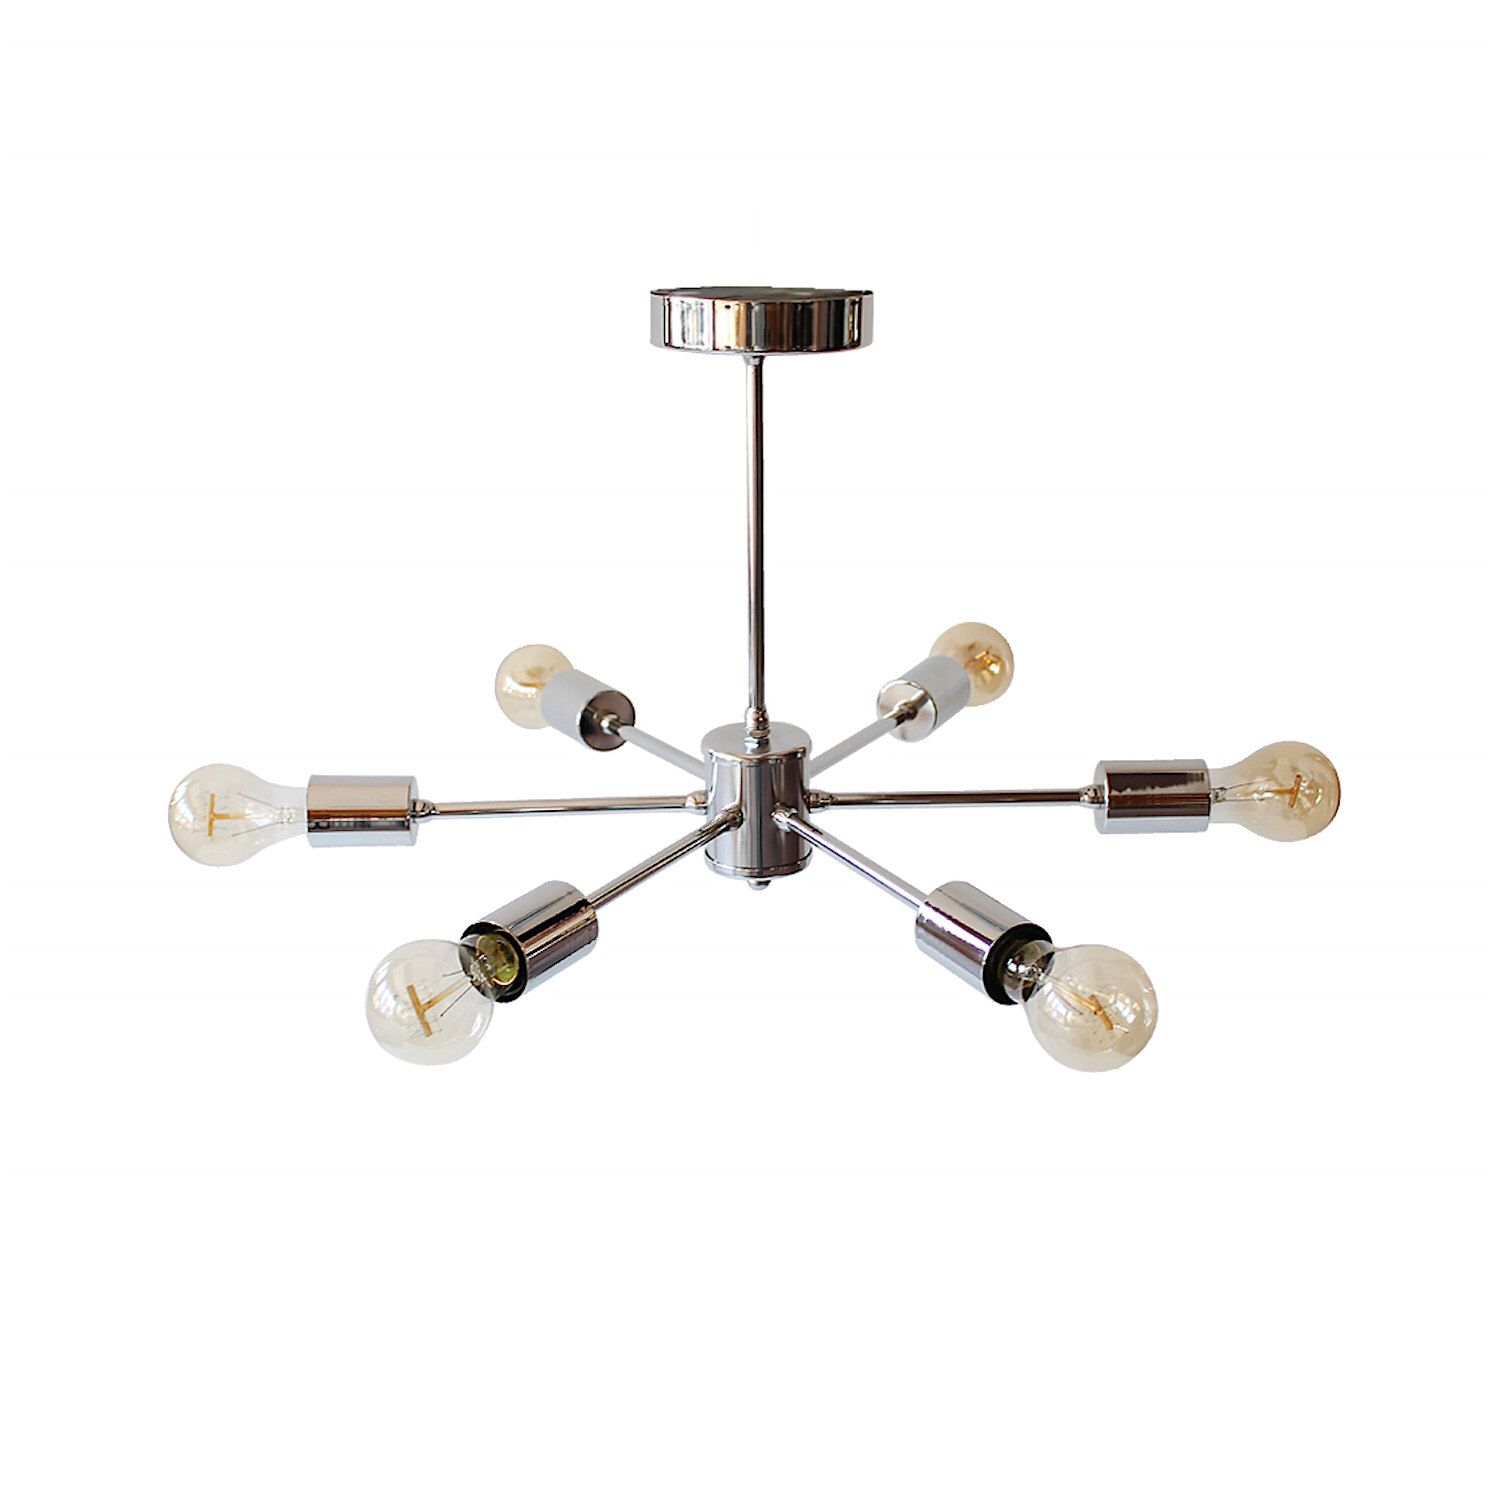 Modern Geometric Chrome Ceiling Chandelier 6 Arm Industrial Semi ...